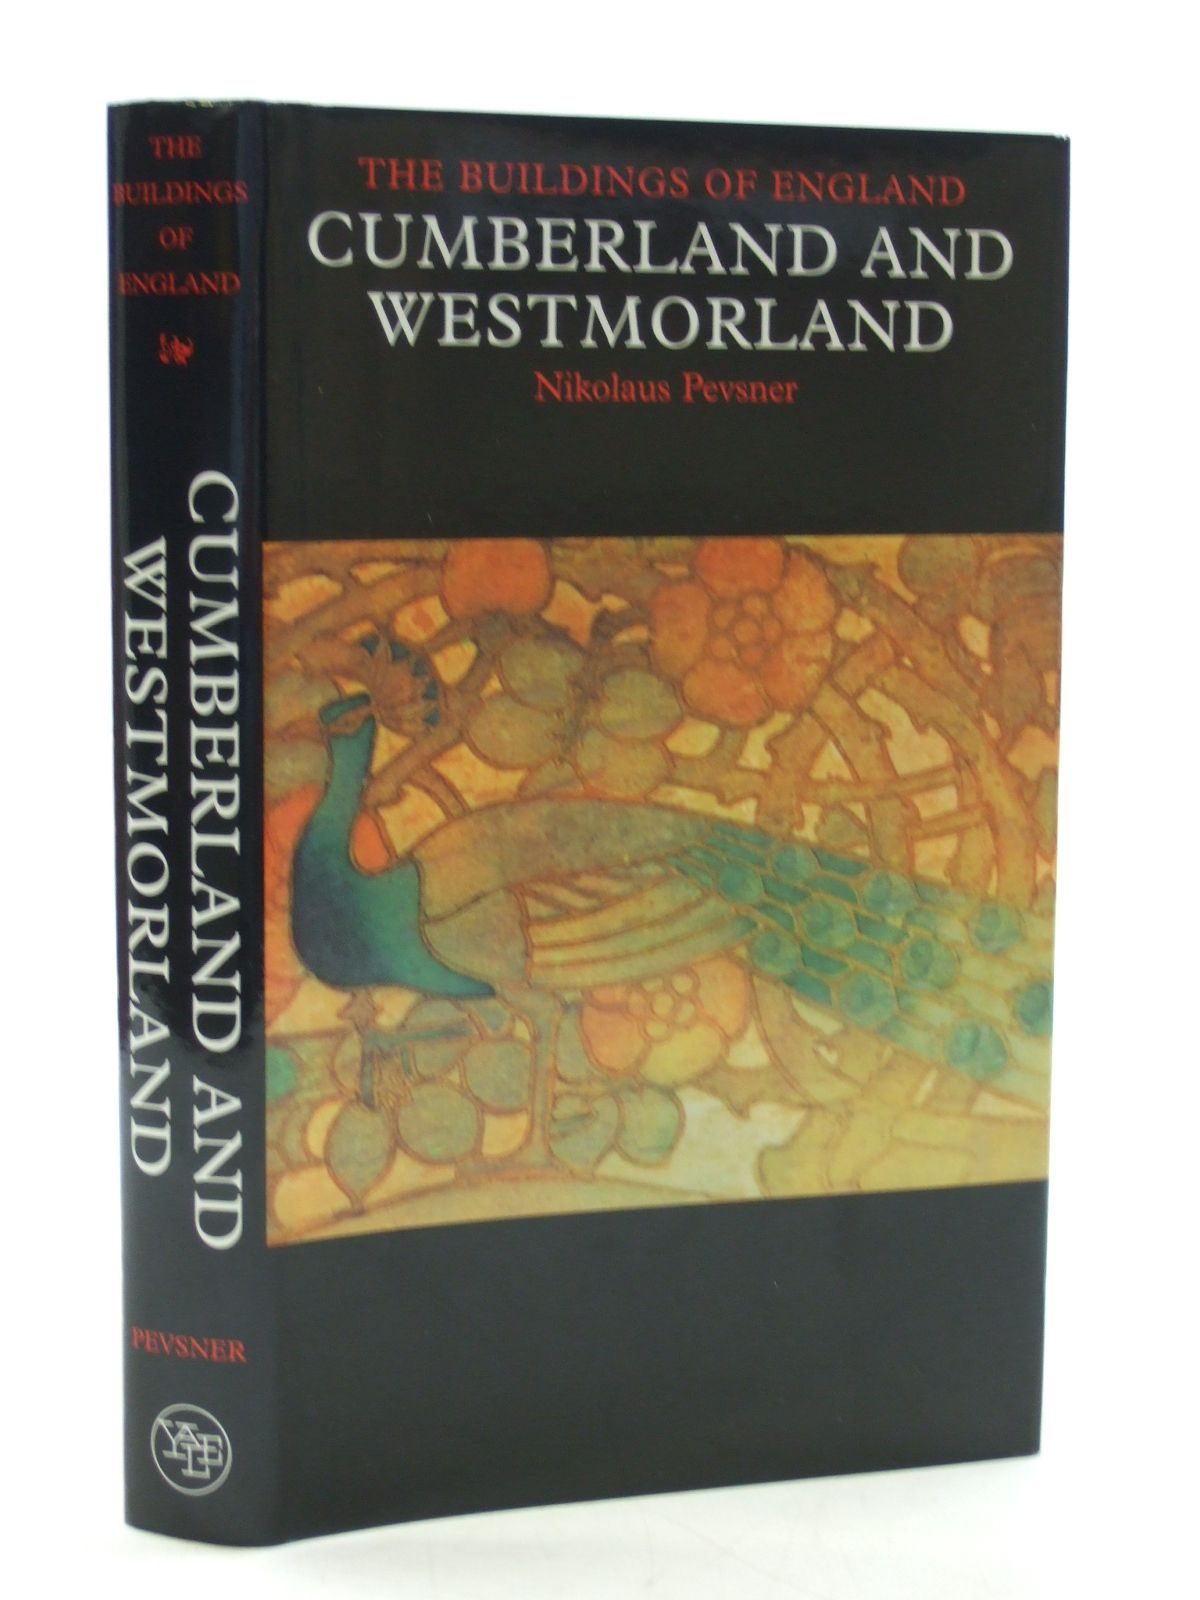 Photo of CUMBERLAND AND WESTMORLAND (BUILDINGS OF ENGLAND)